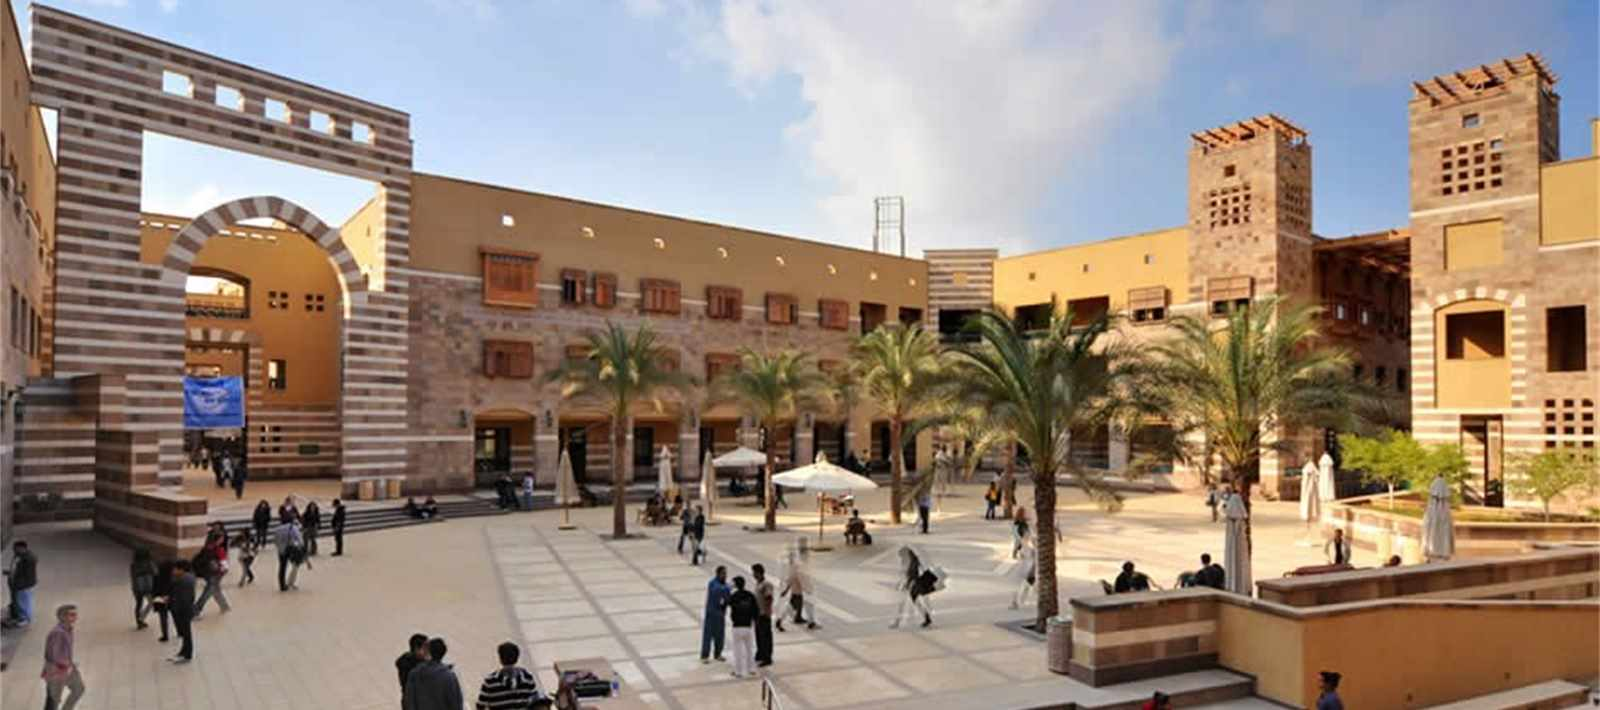 The campus of the American University in Cairo (AUC).